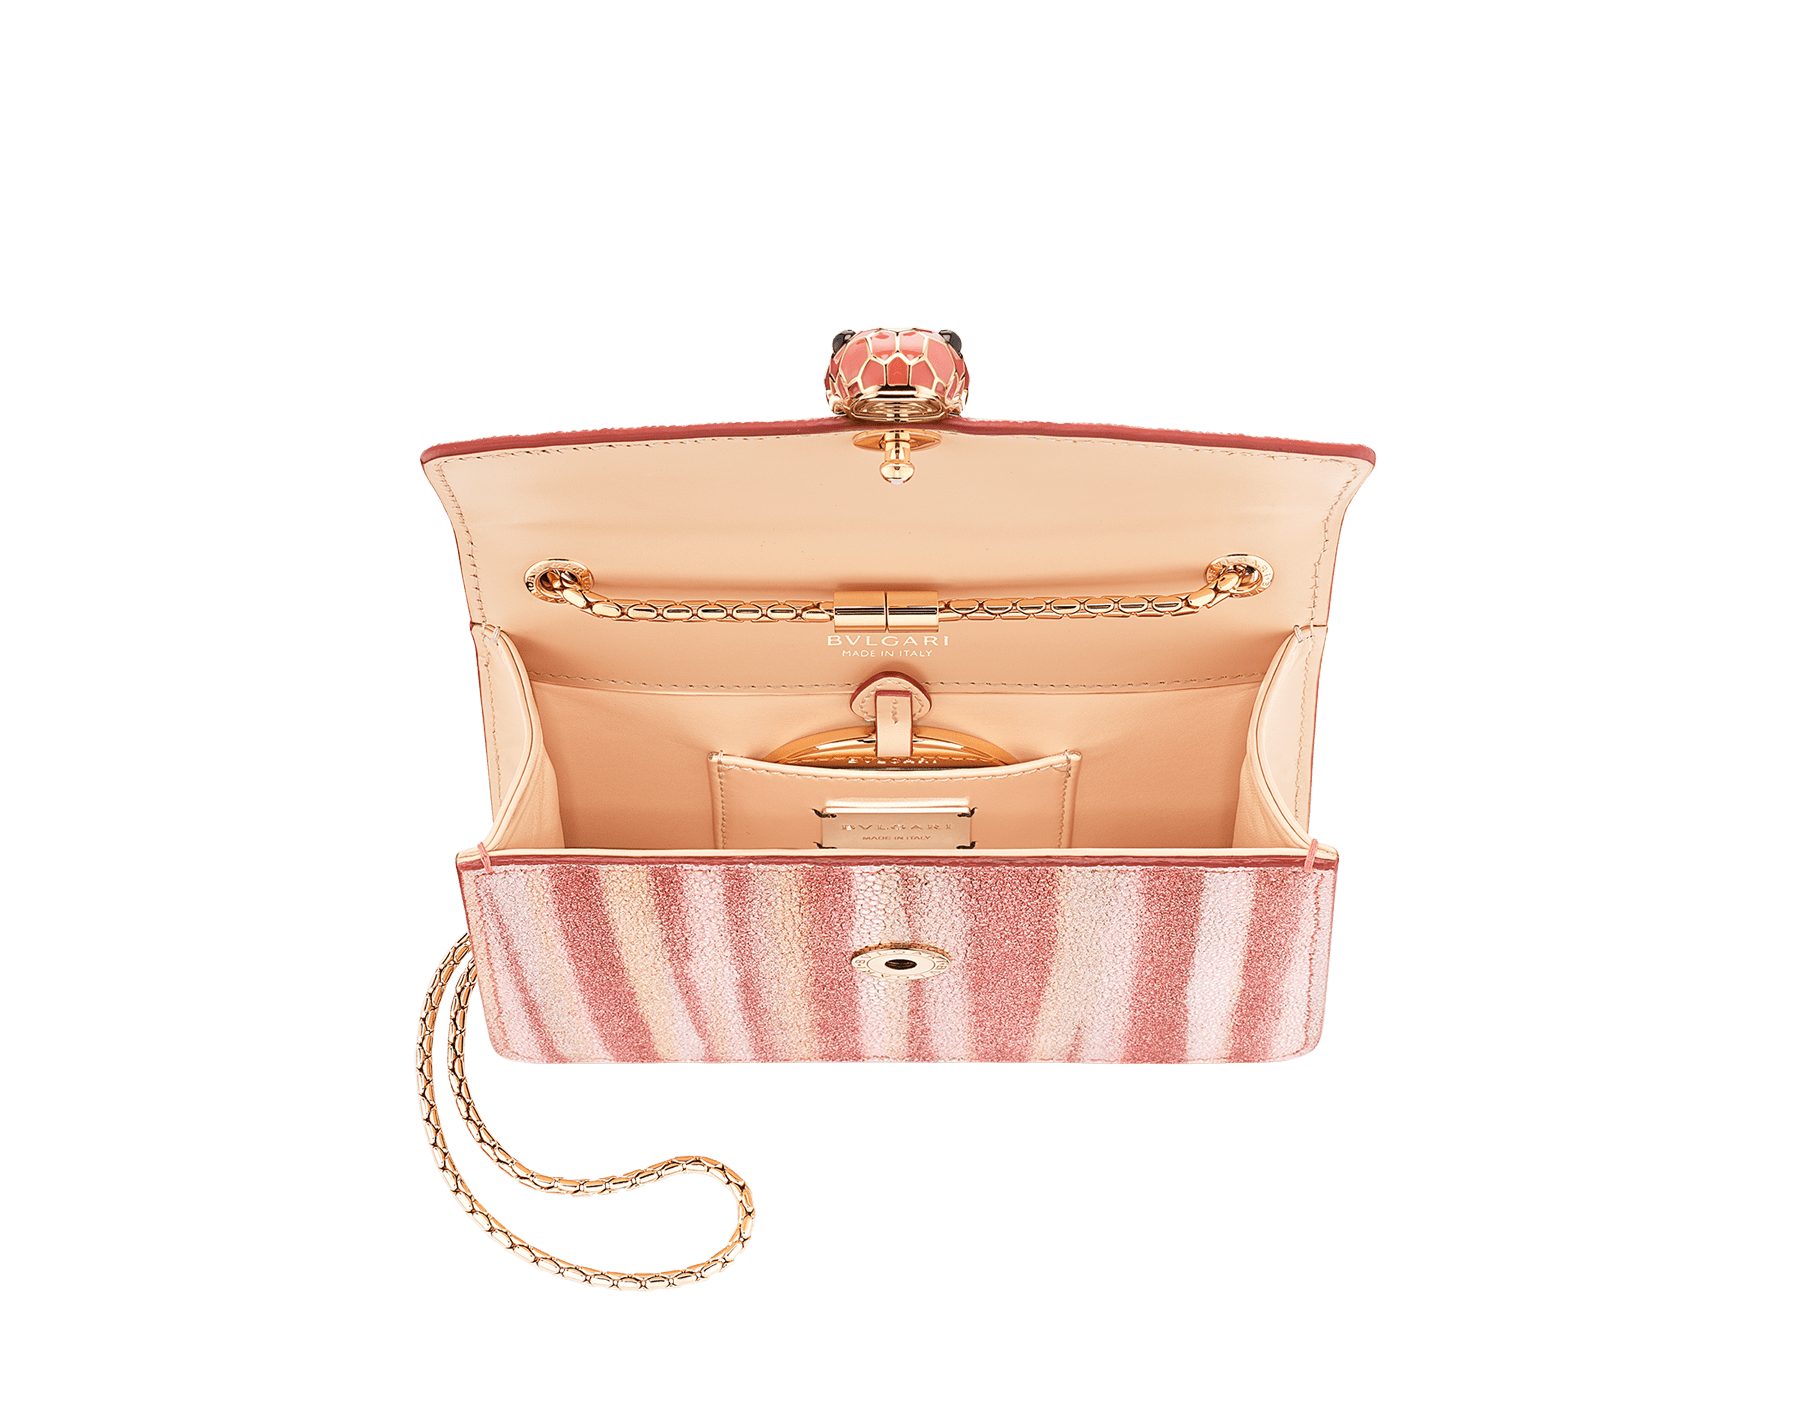 """Serpenti Forever"" crossbody bag in multicolor ""Ministriped"" galuchat skin body and peach calf leather sides, with peach nappa leather internal lining. Tempting snakehead closure in gold plated brass enriched with dark and matte peach enamel and black onyx eyes. 290557 image 2"